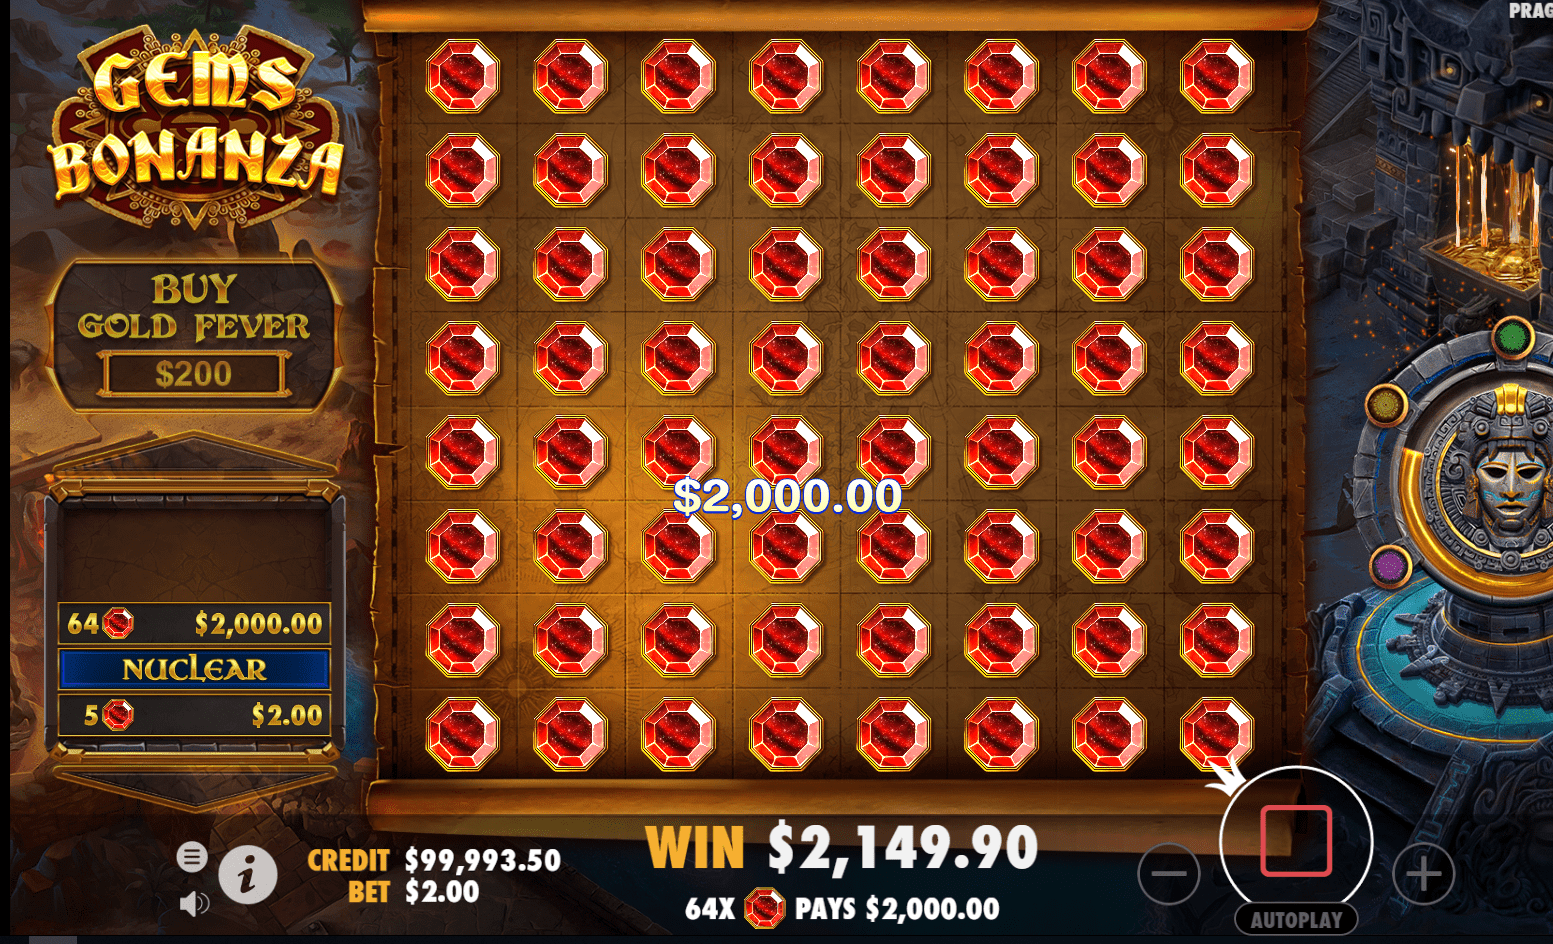 Gems Bonanza video slot big win